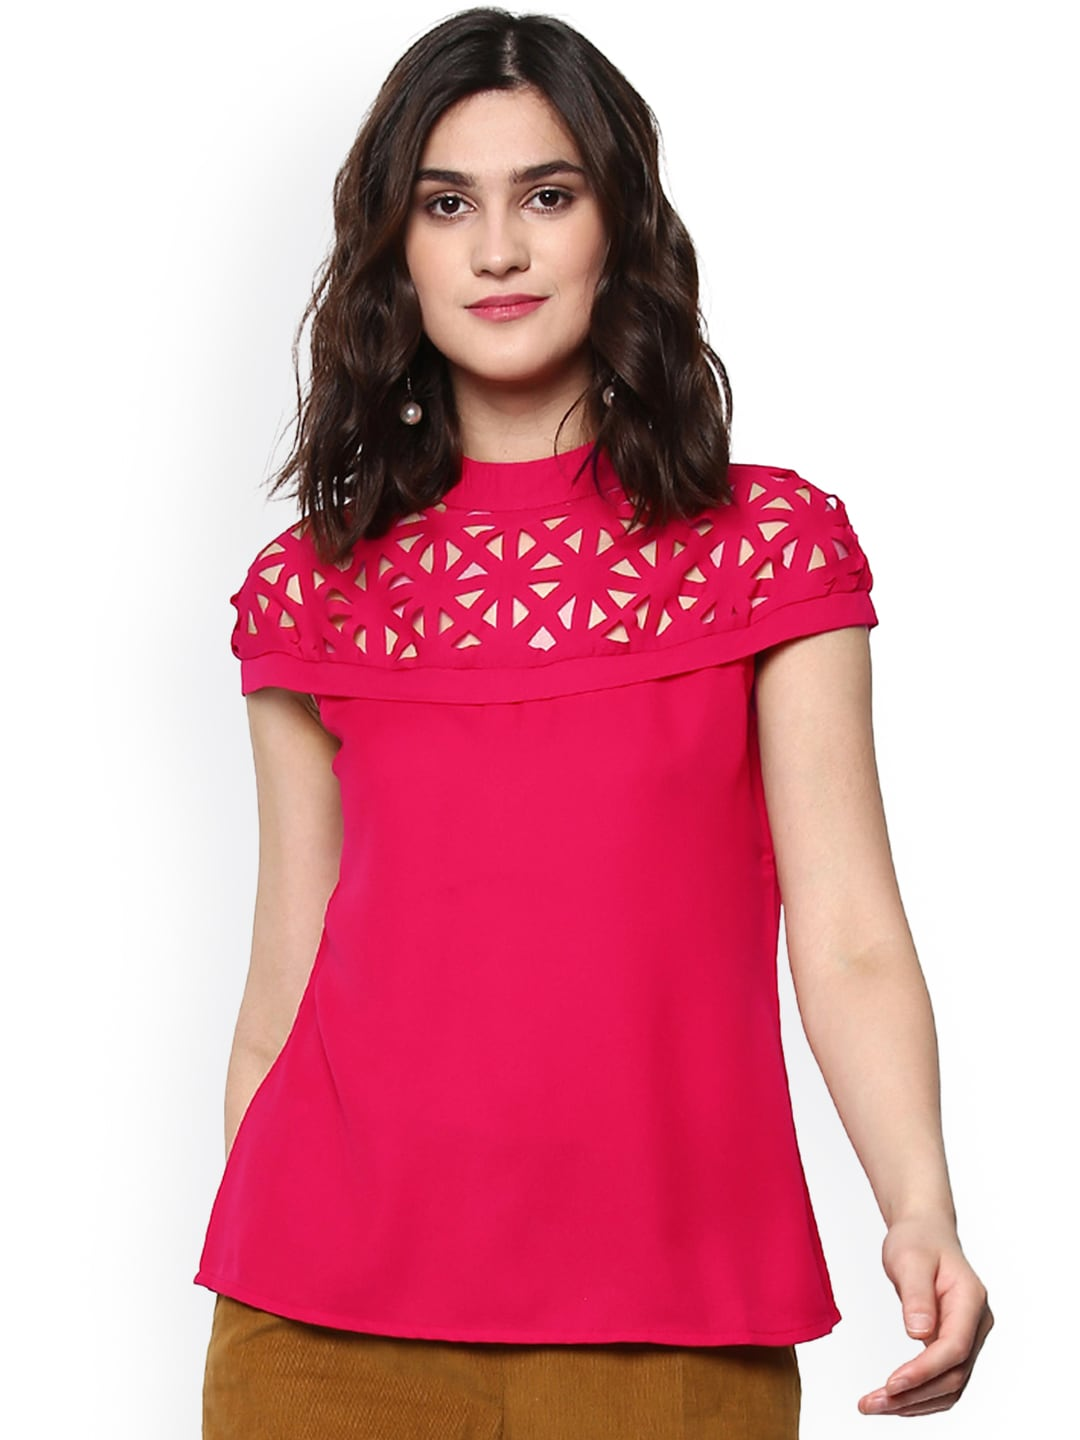 Buy The Vanca Yellow Top Tops For Women 1857894 Myntra Someday Pink Floral Embroidery Sassafras